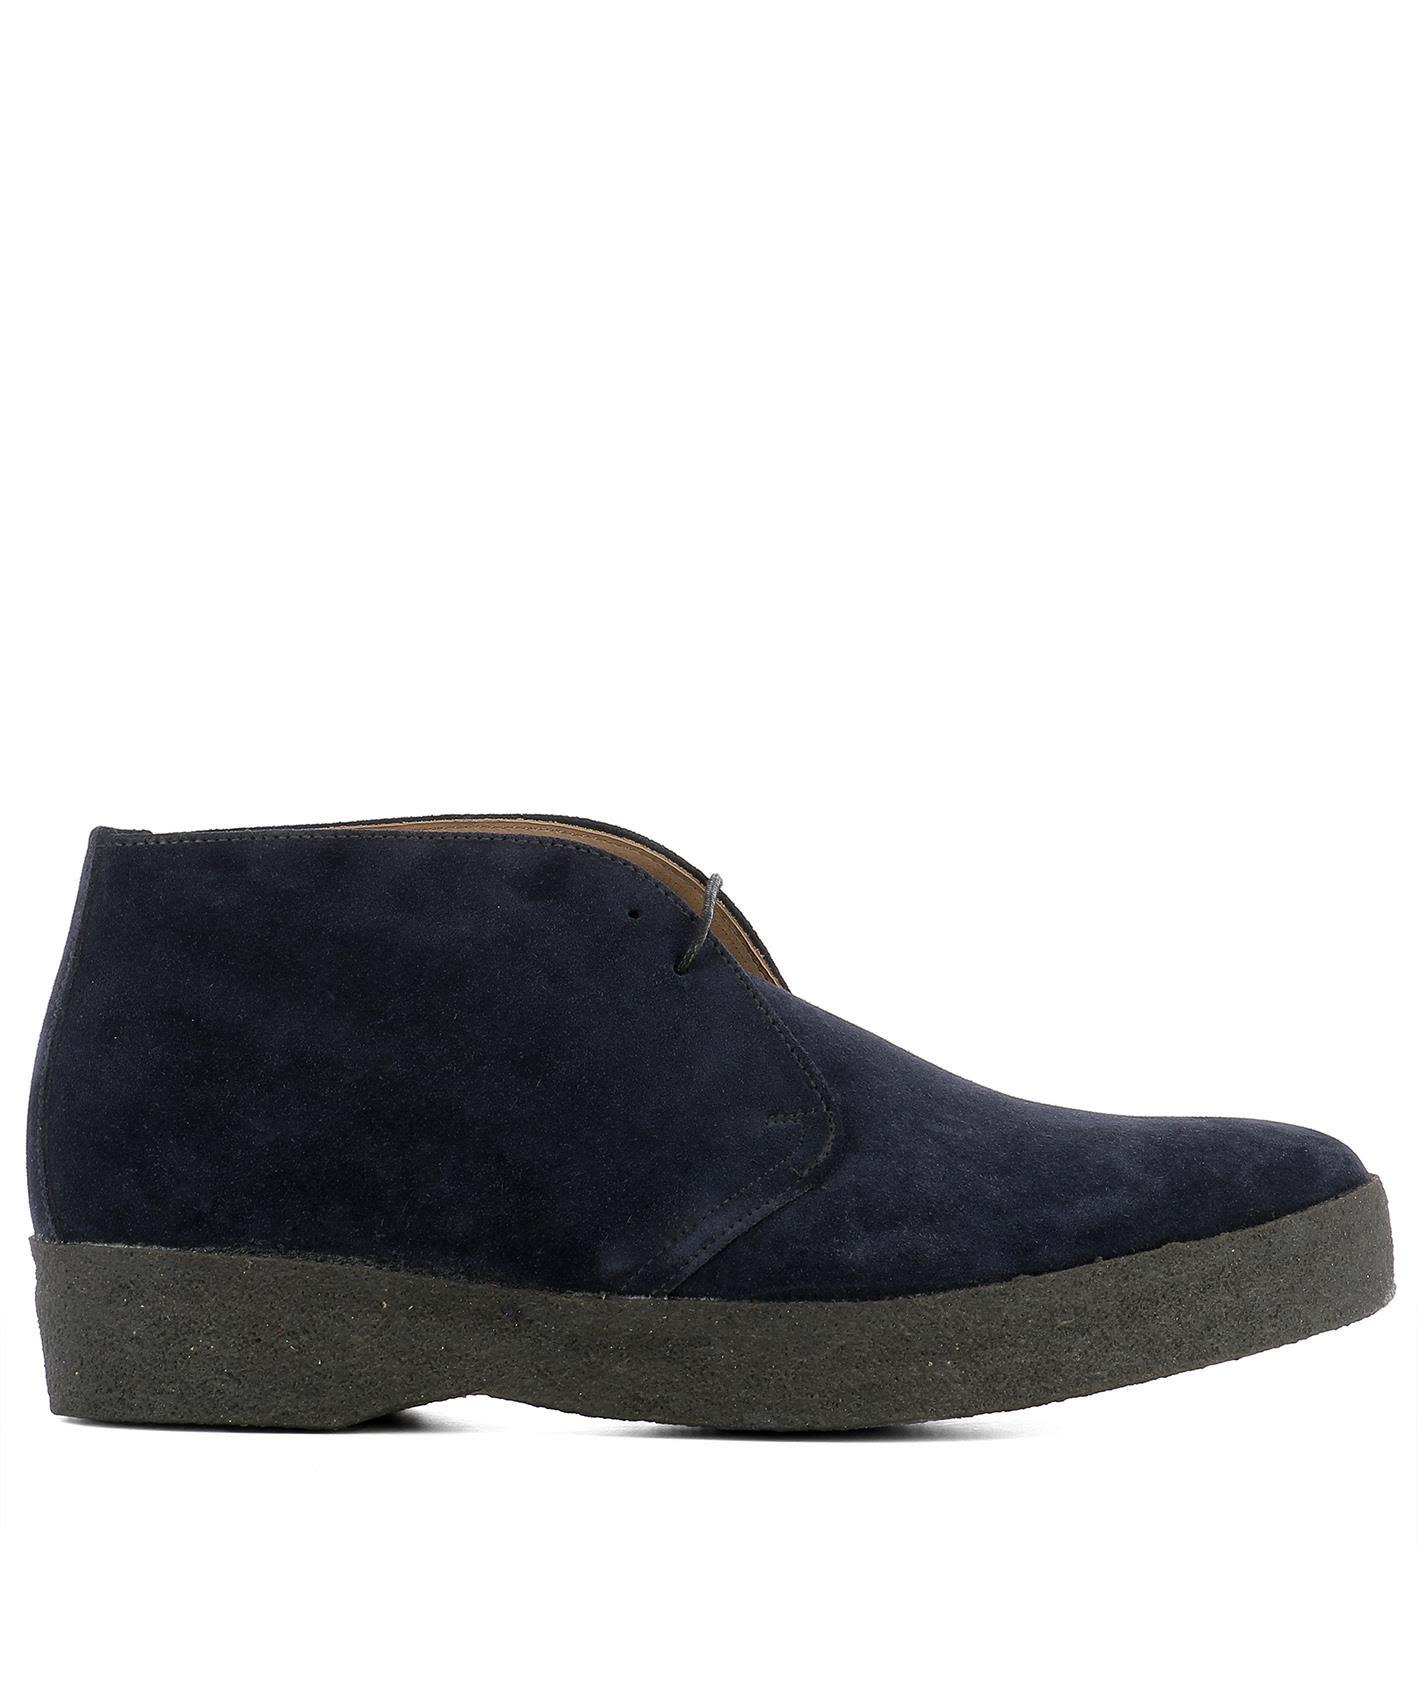 Sanders Blue Suede Ankle Boots In Navy